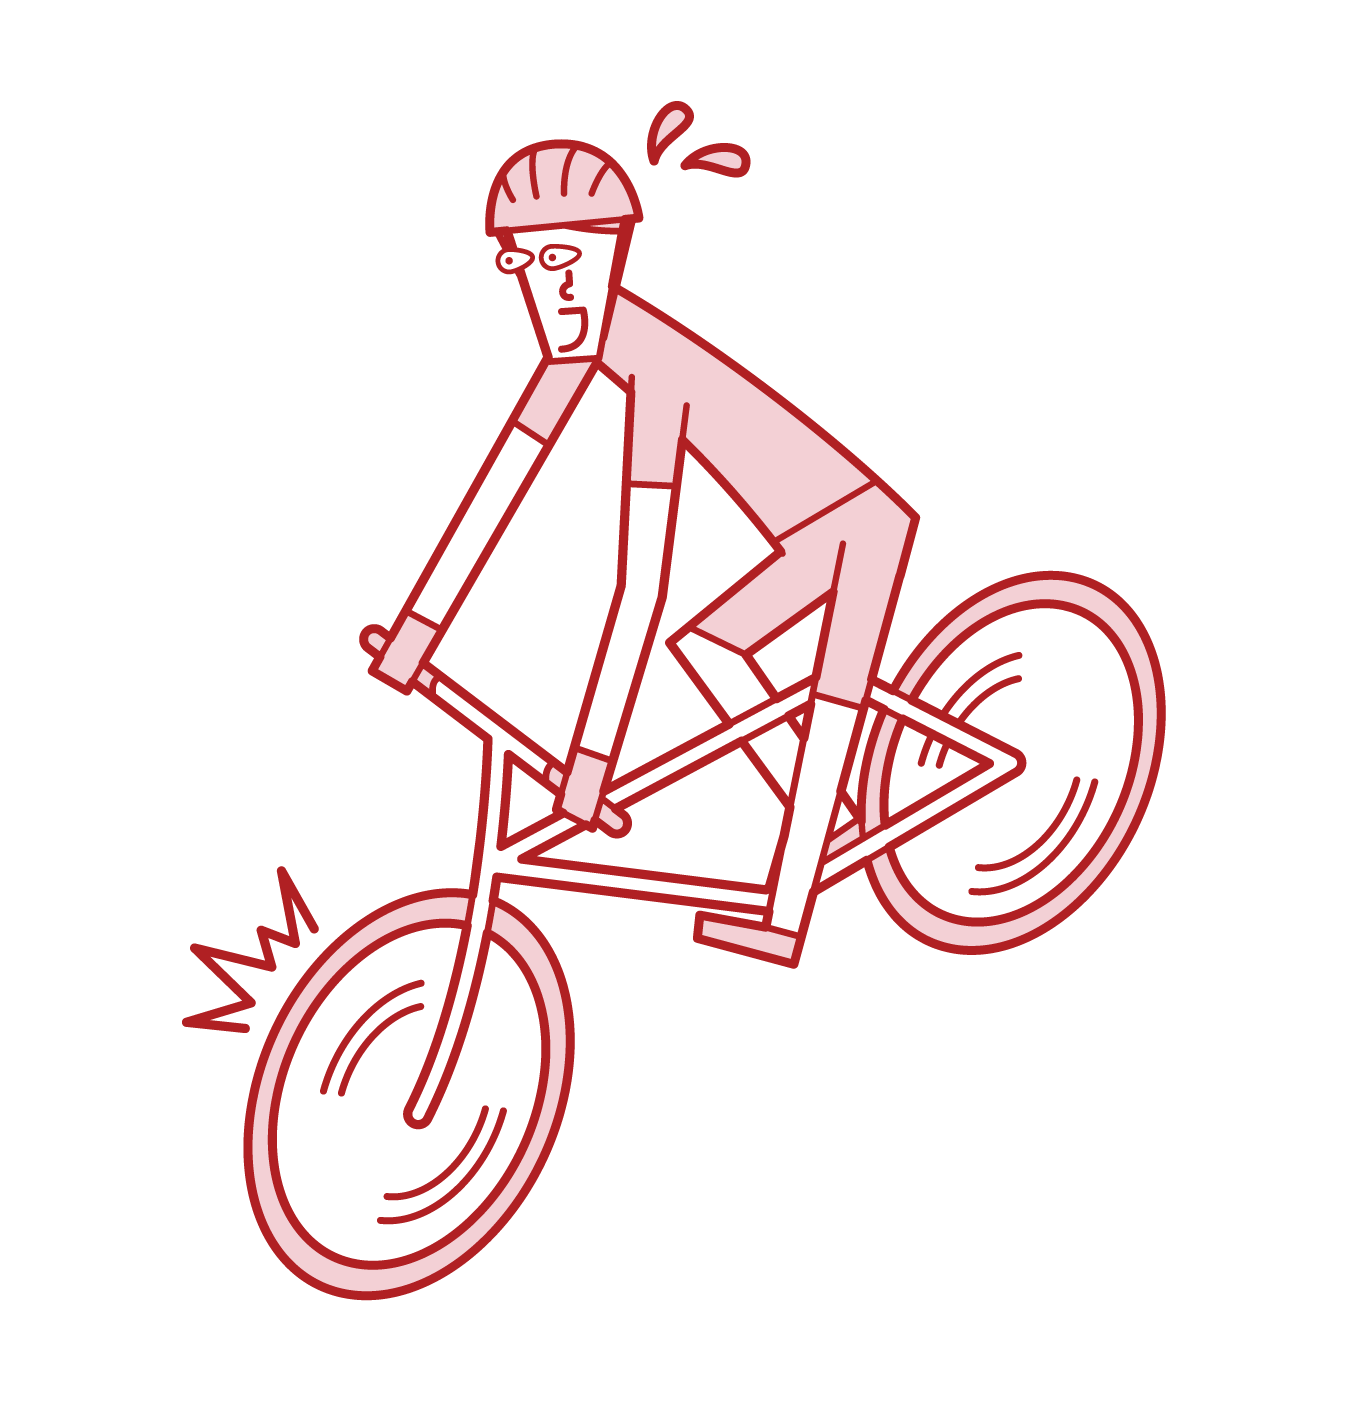 Illustration of a cyclist (man) who brakes suddenly